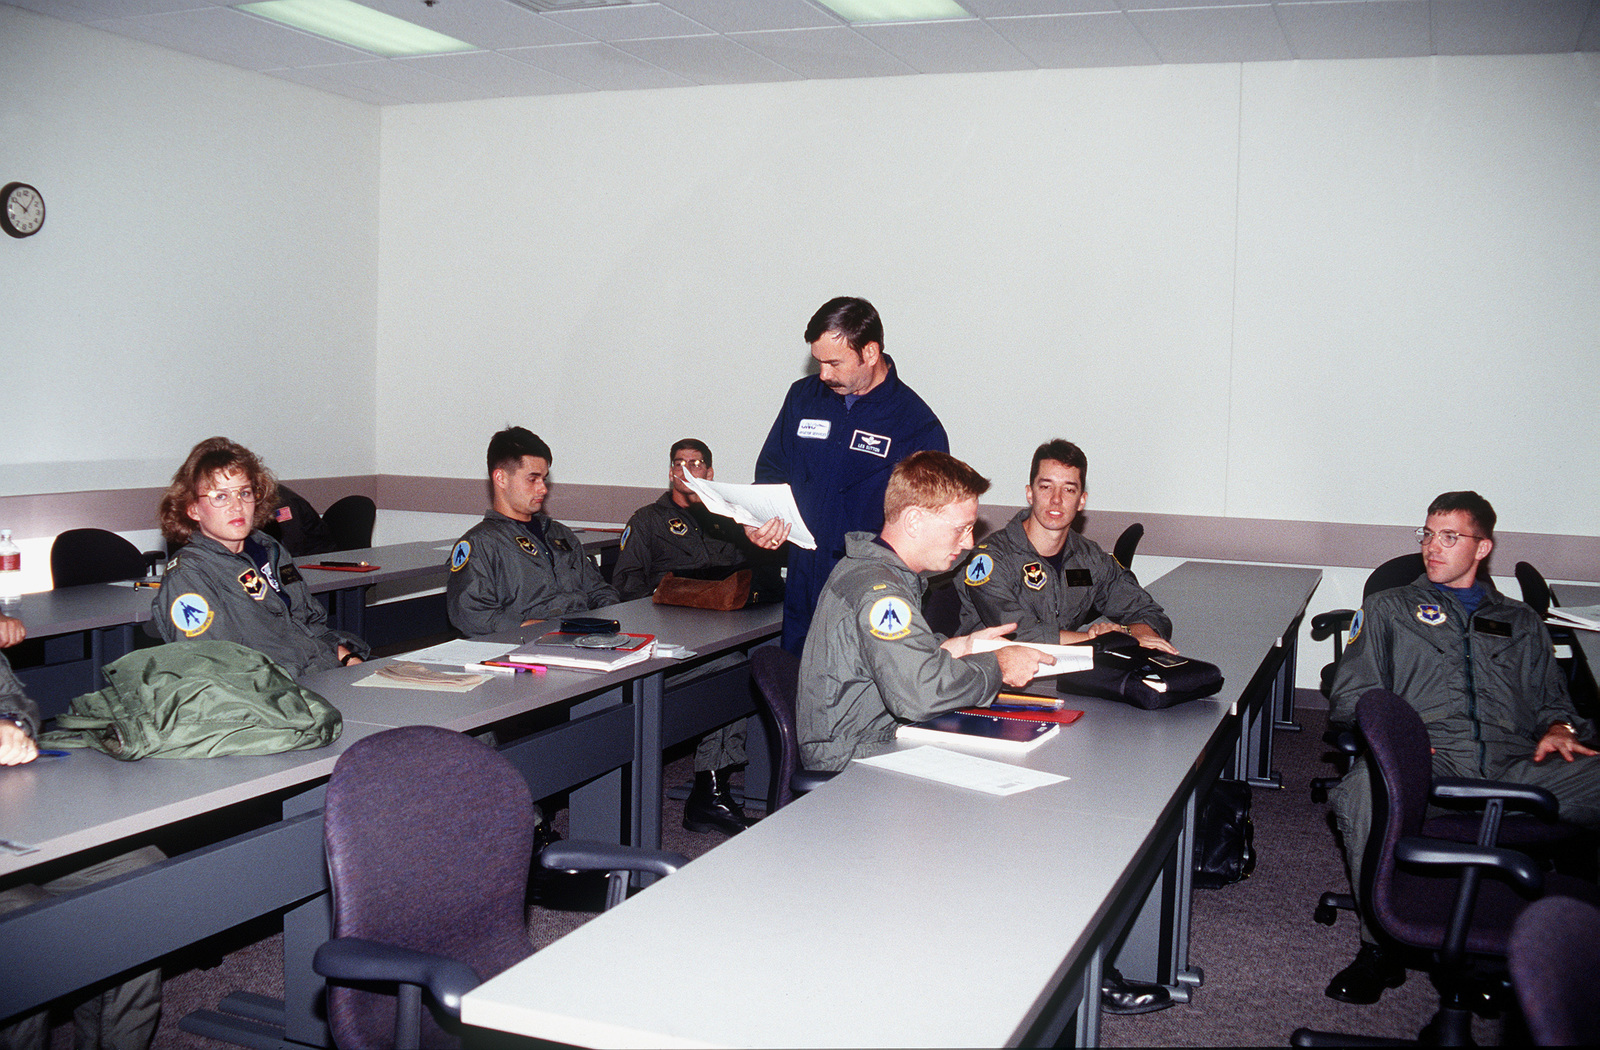 In the first combined U.S. Navy and U.S. Air Force joint navigator class of its kind, Instructor Les Sutton hands out graded tests in air navigation to students of class 9701 in Bldg. 743